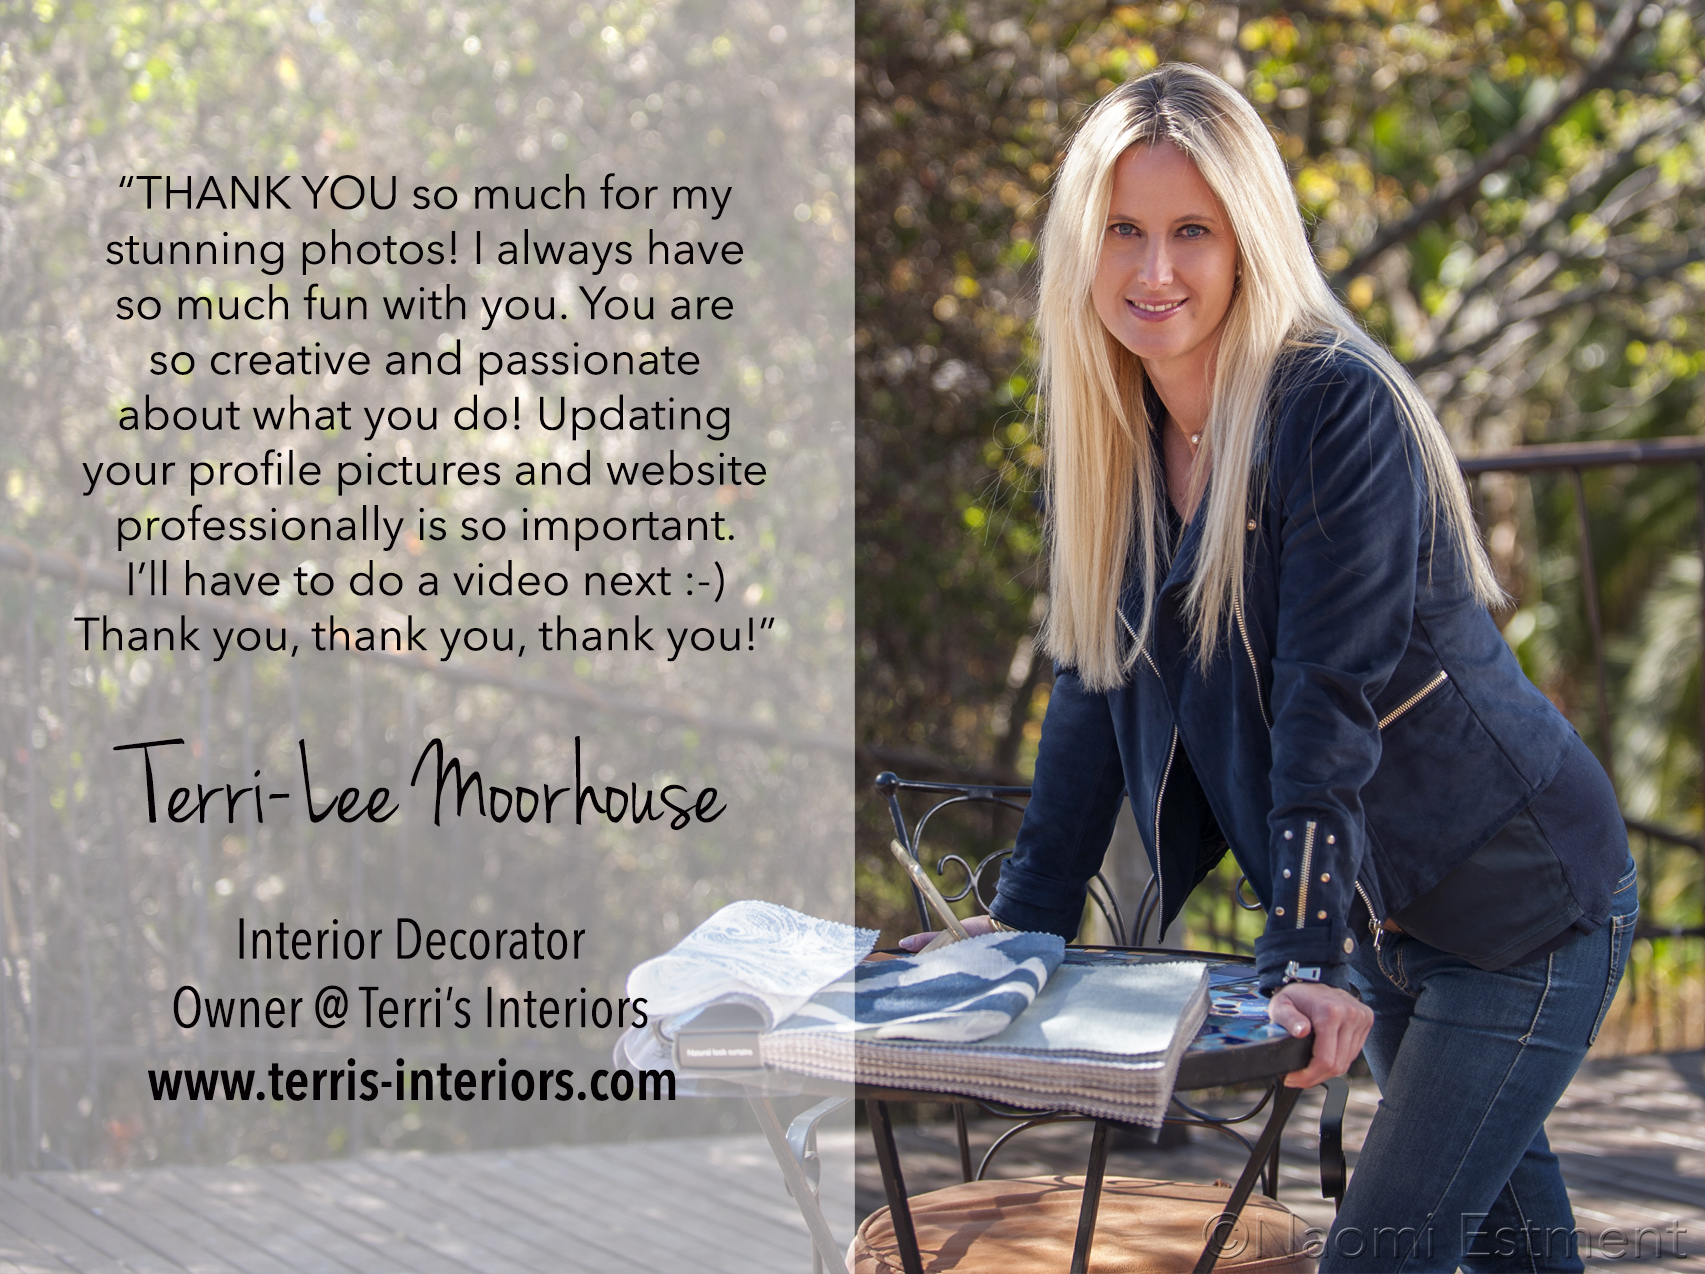 Terri-Lee Moorhouse Testimonial for Naomi Estment